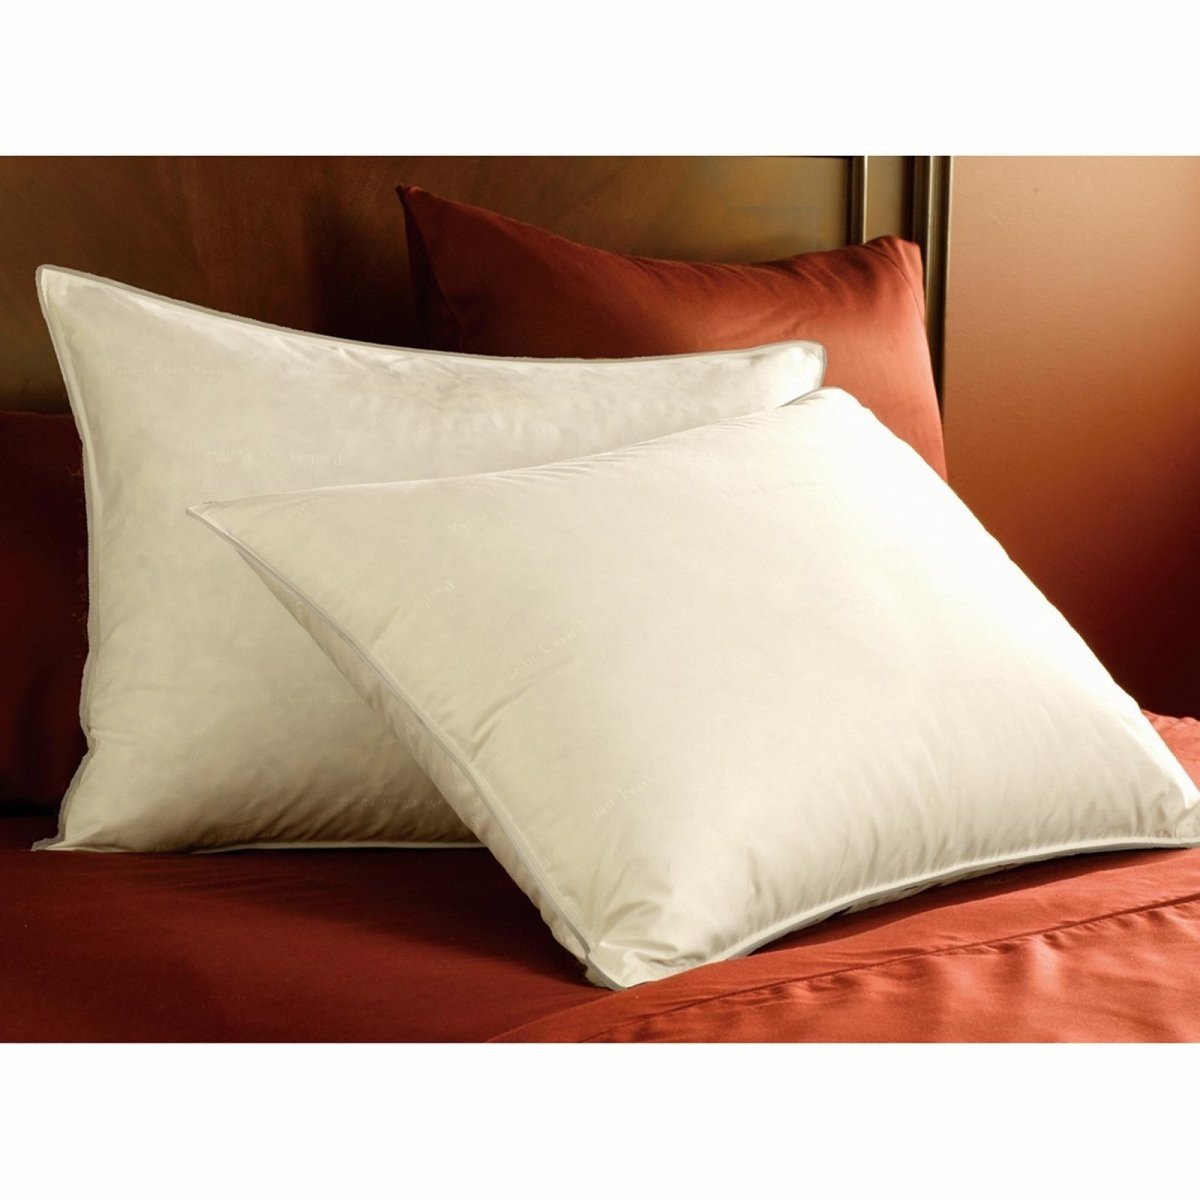 medium power pillows fill dp count coast pacific down thread feathers king pillow home double amazon com pack resilia downaround kitchen